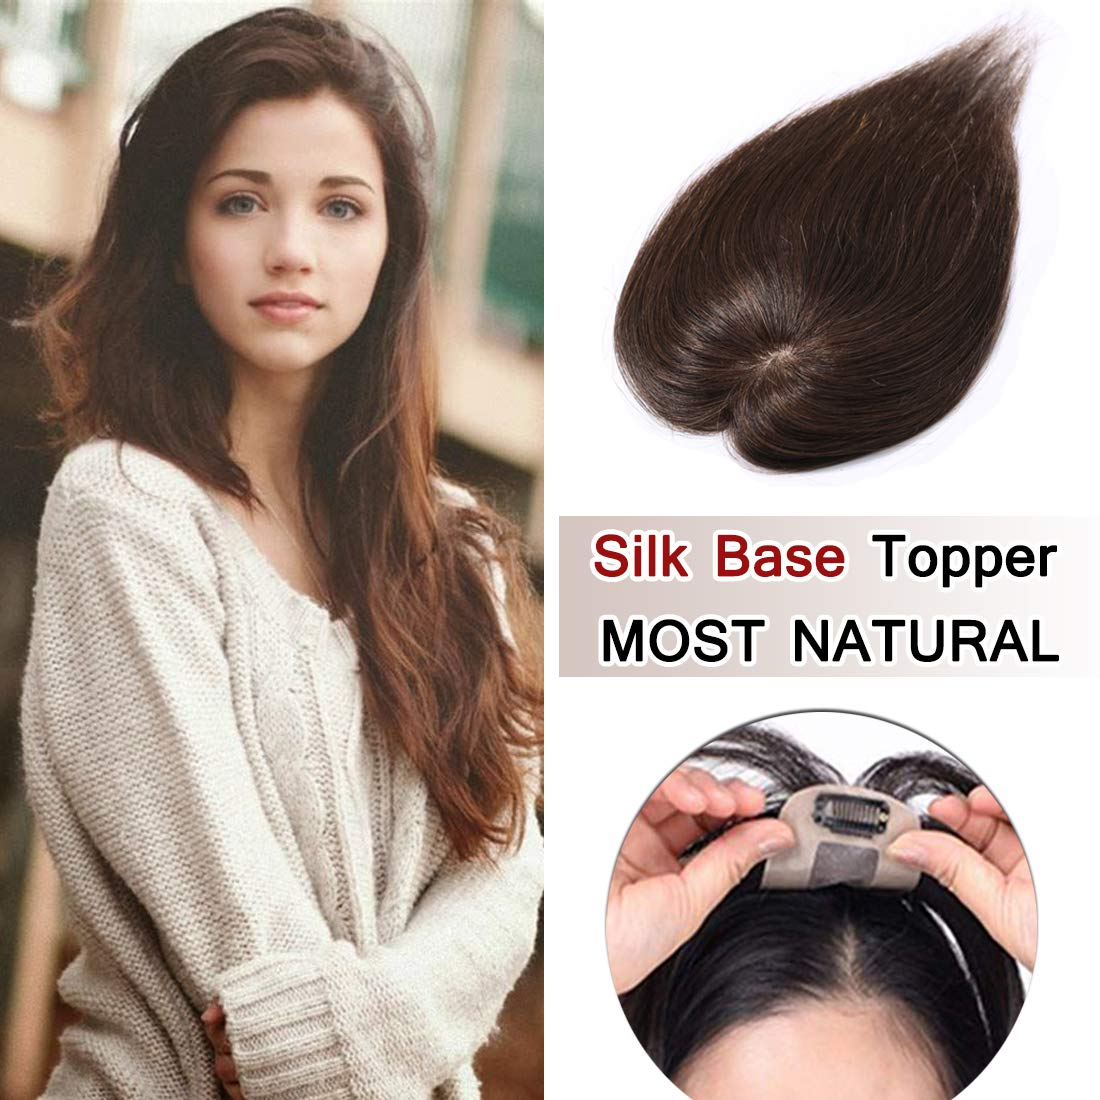 100% Density Top Hair Pieces Silk Base Crown Topper Human Hair Clip in Hair Toppers Top Hairpieces for Women with Thinning Hair Gray Hair/Hair Loss #04 Medium Brown 16 inches 30g